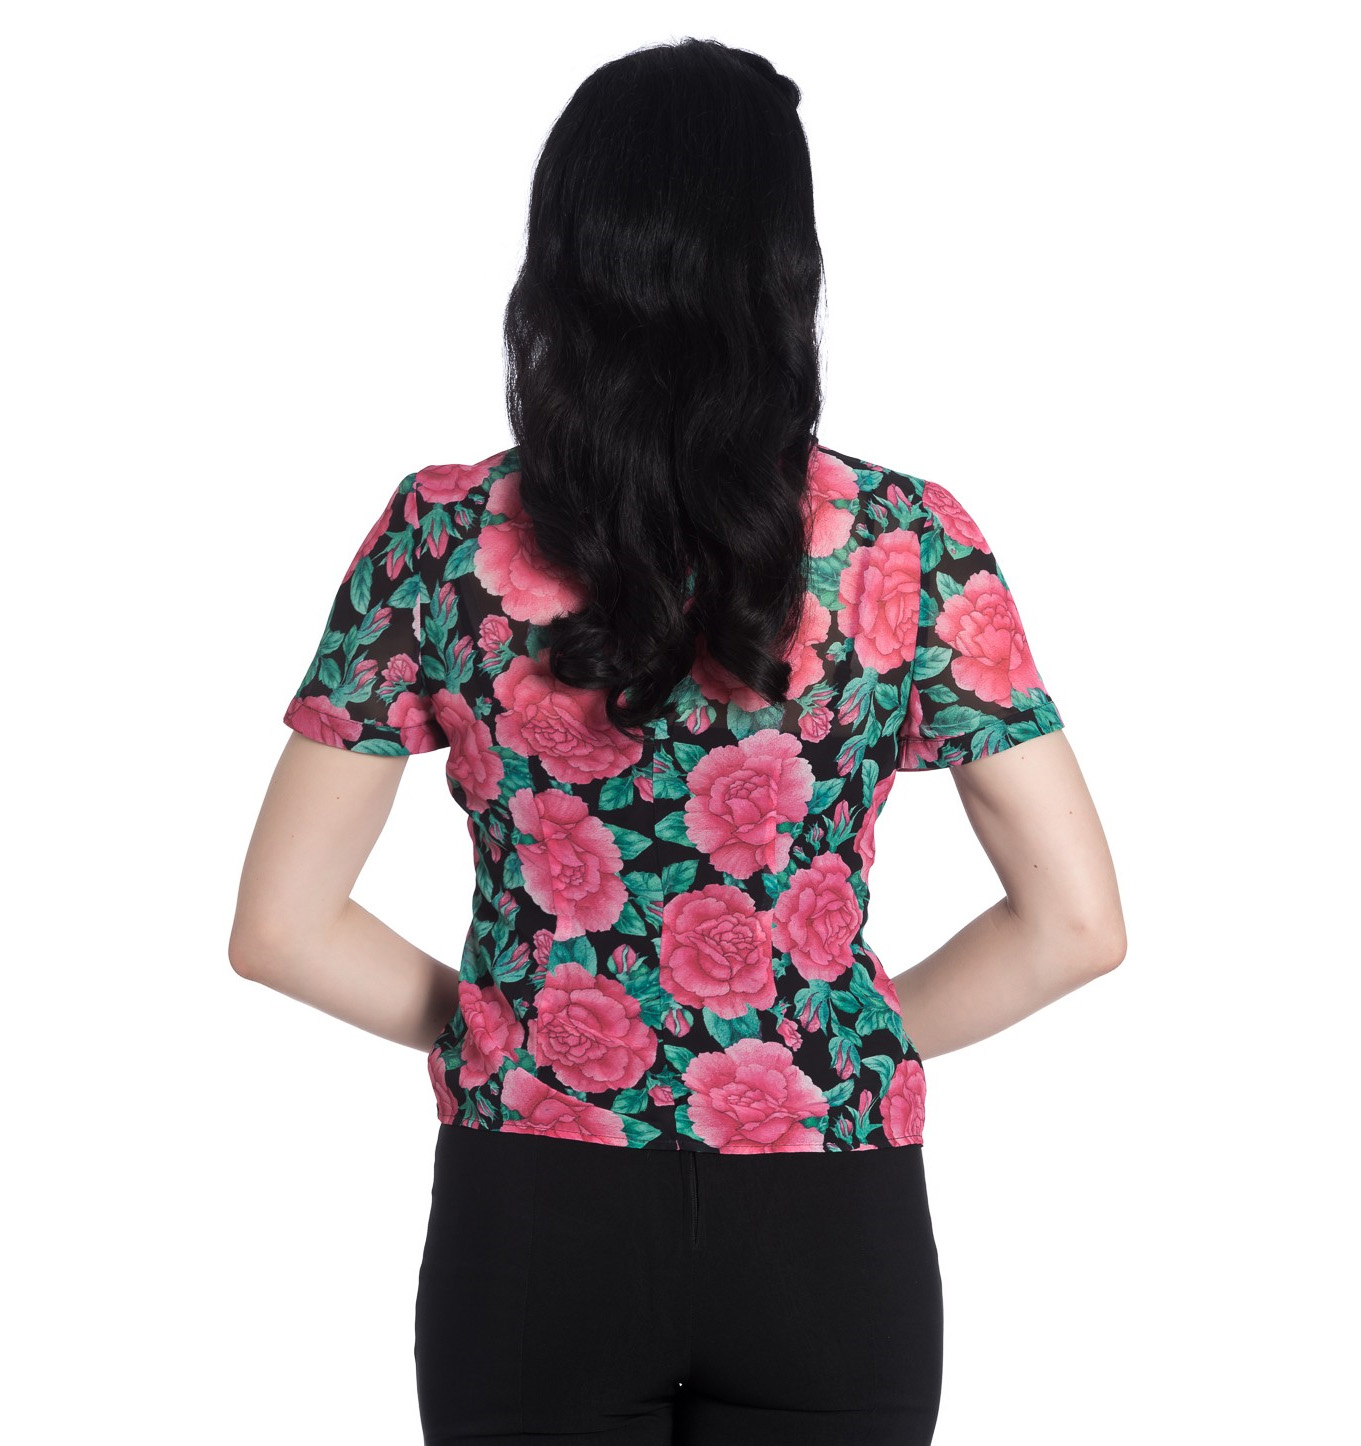 Hell-Bunny-Shirt-Top-Flowers-Roses-EDEN-ROSE-Black-Pink-Blouse-All-Sizes thumbnail 17